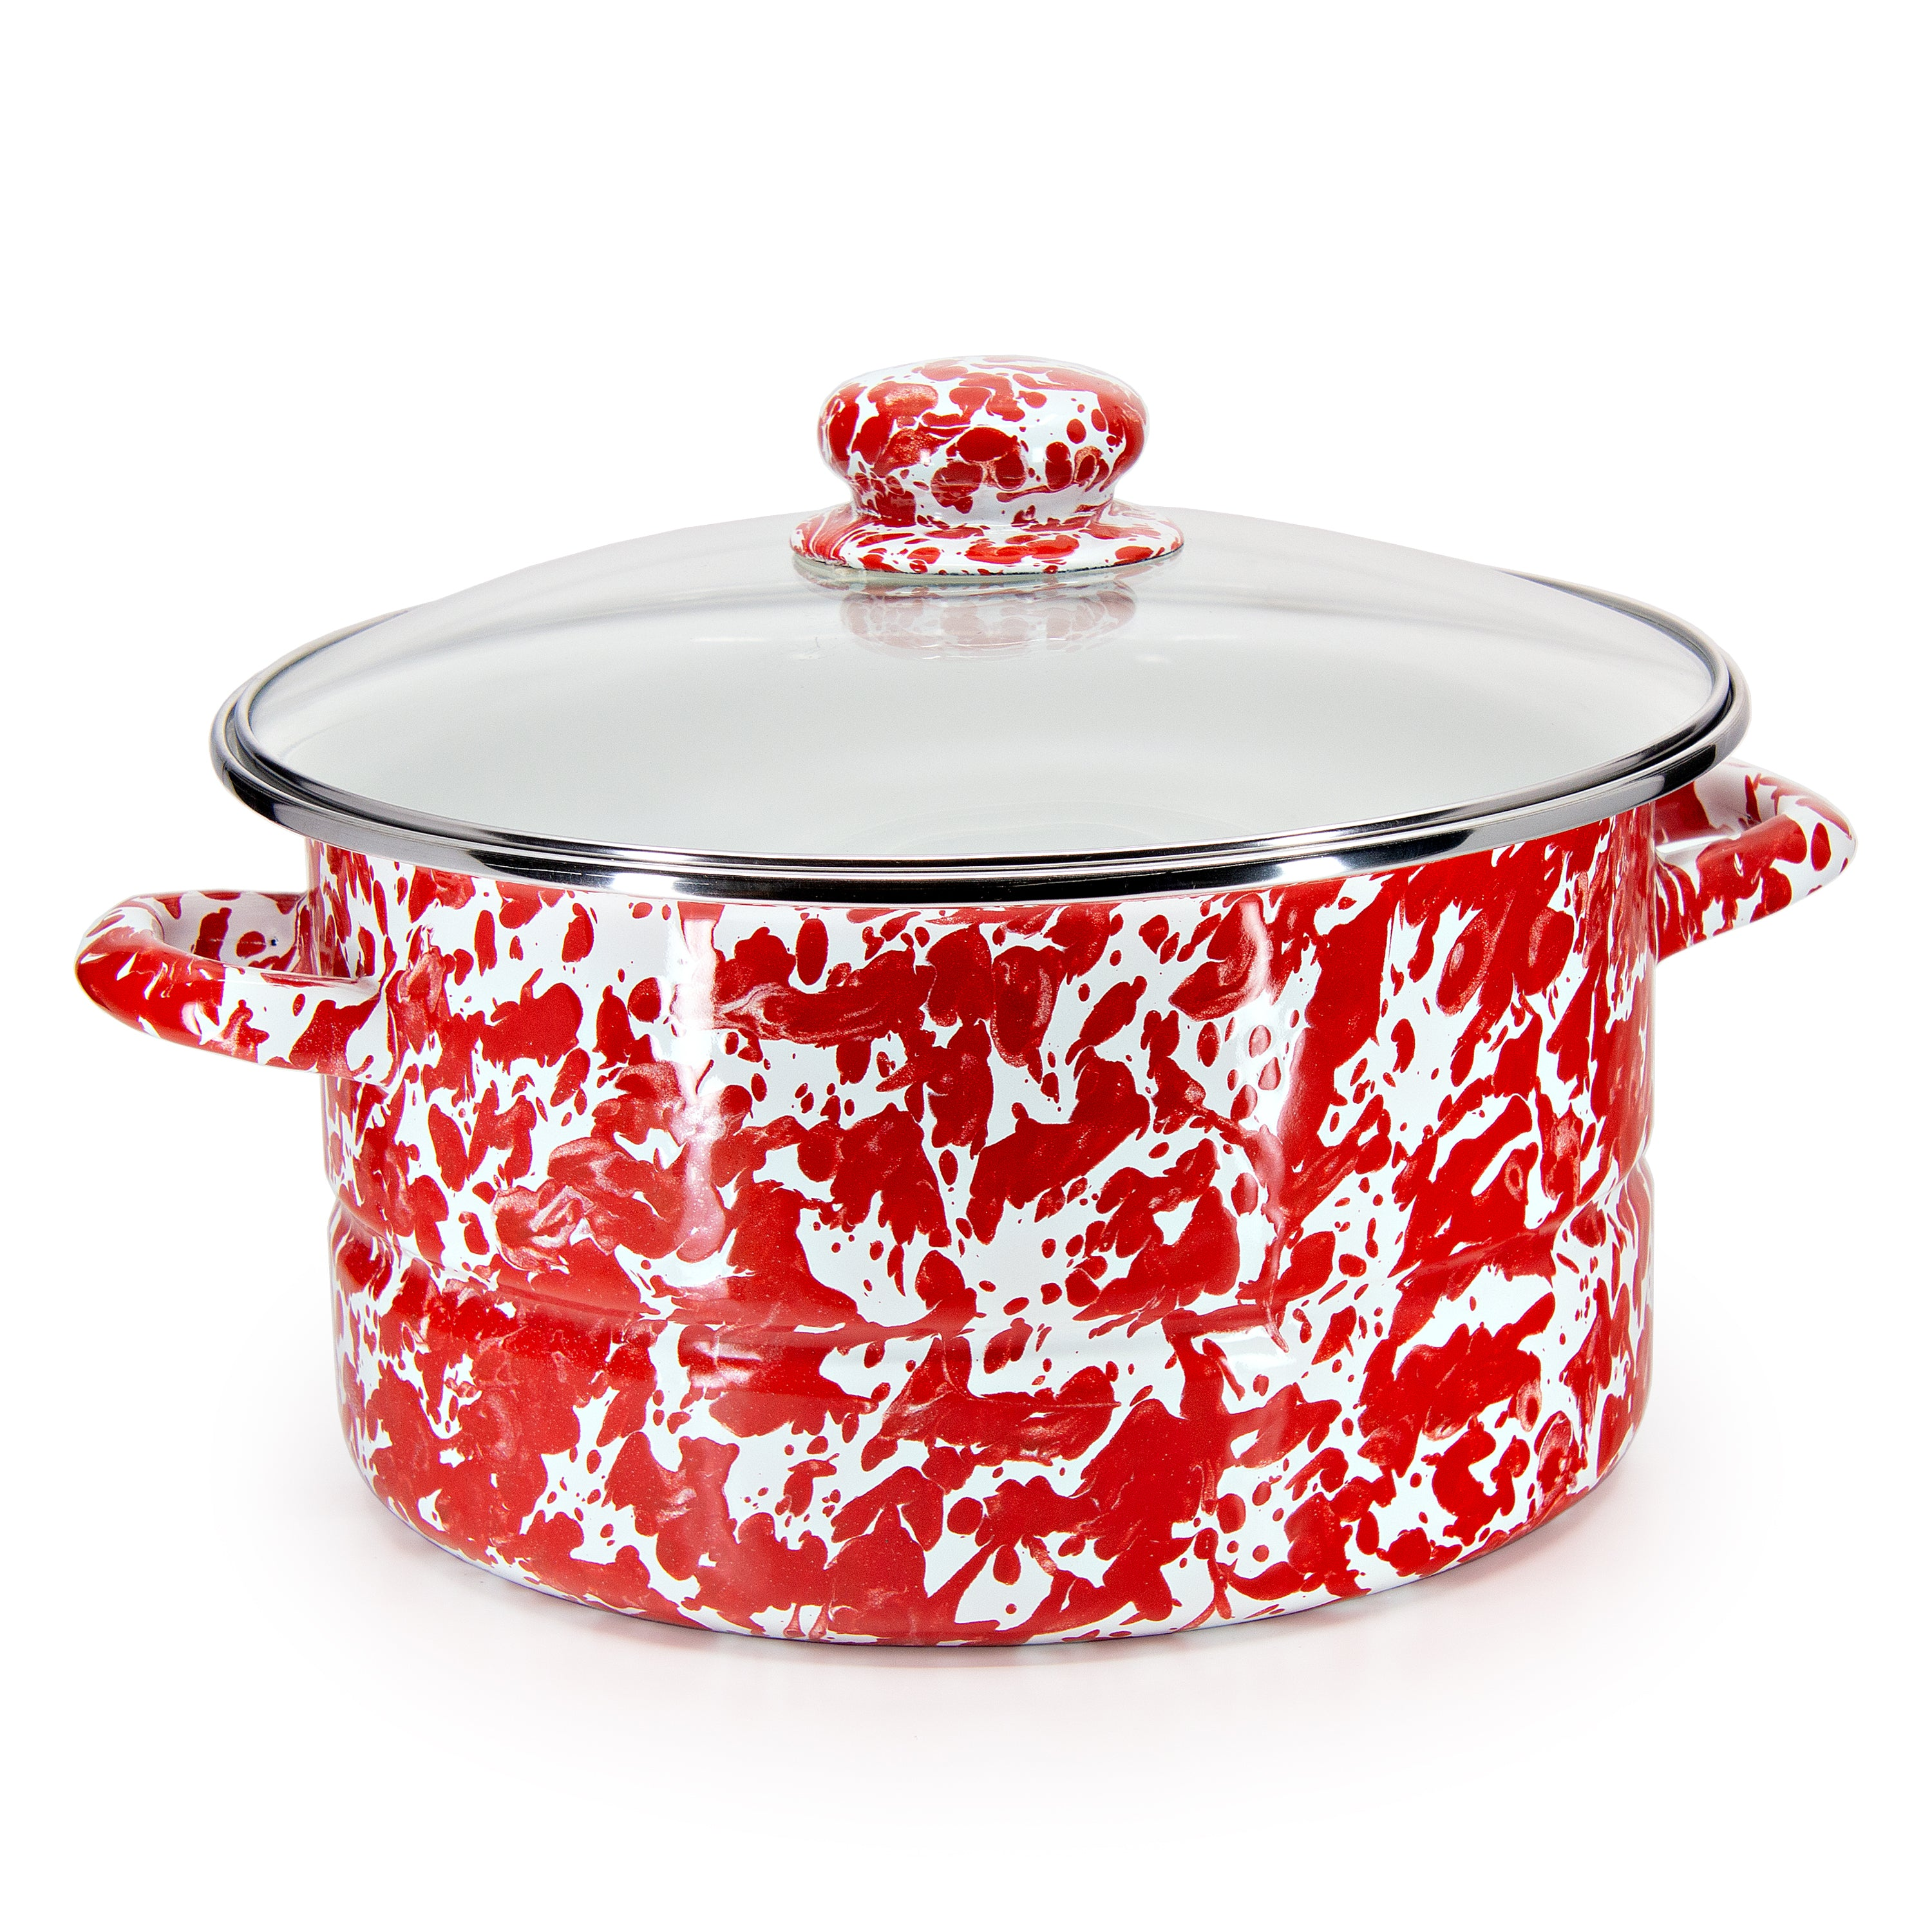 RD72 - Red Swirl Pattern - 6qt Stock Pot